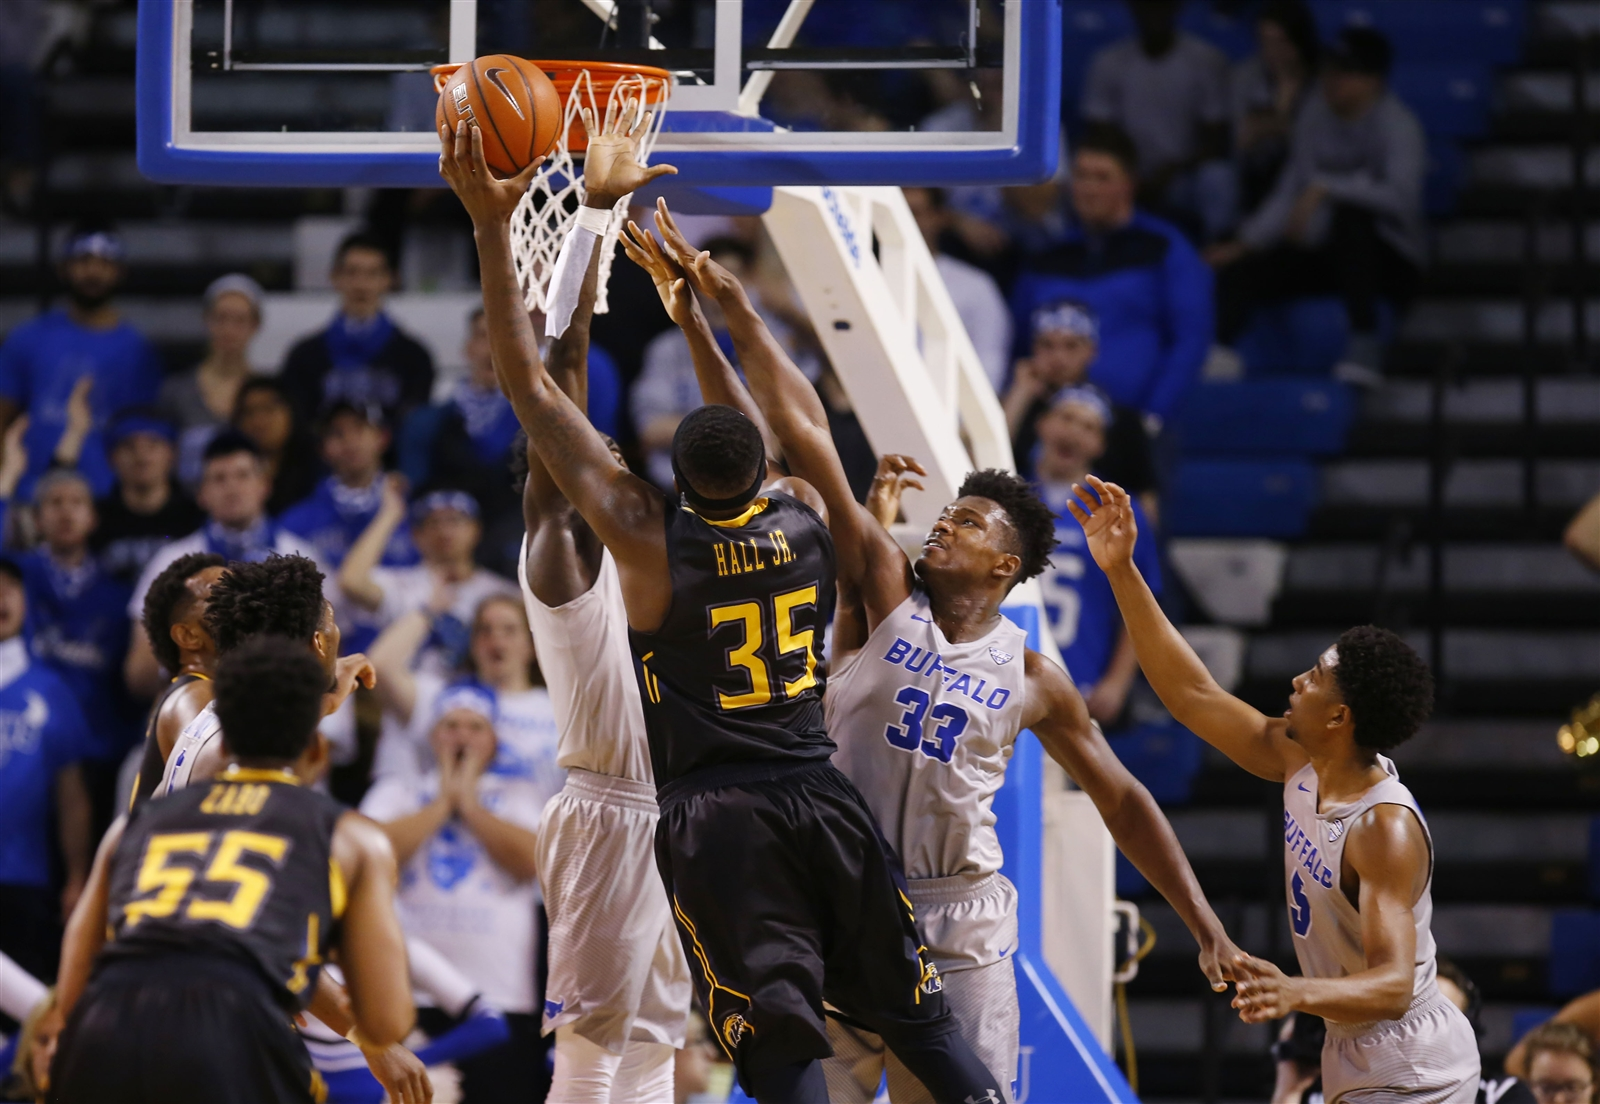 Kent State's Jimmy Hall poses a big problem for UB. (Harry Scull Jr./Buffalo News)